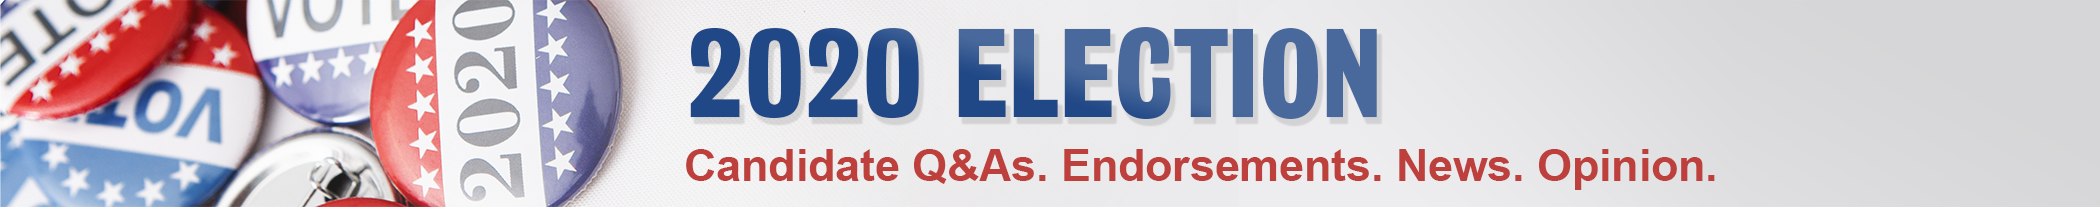 Election news banner links to 2020 Election page with candidate Q&As, endorsements, news and opinion.